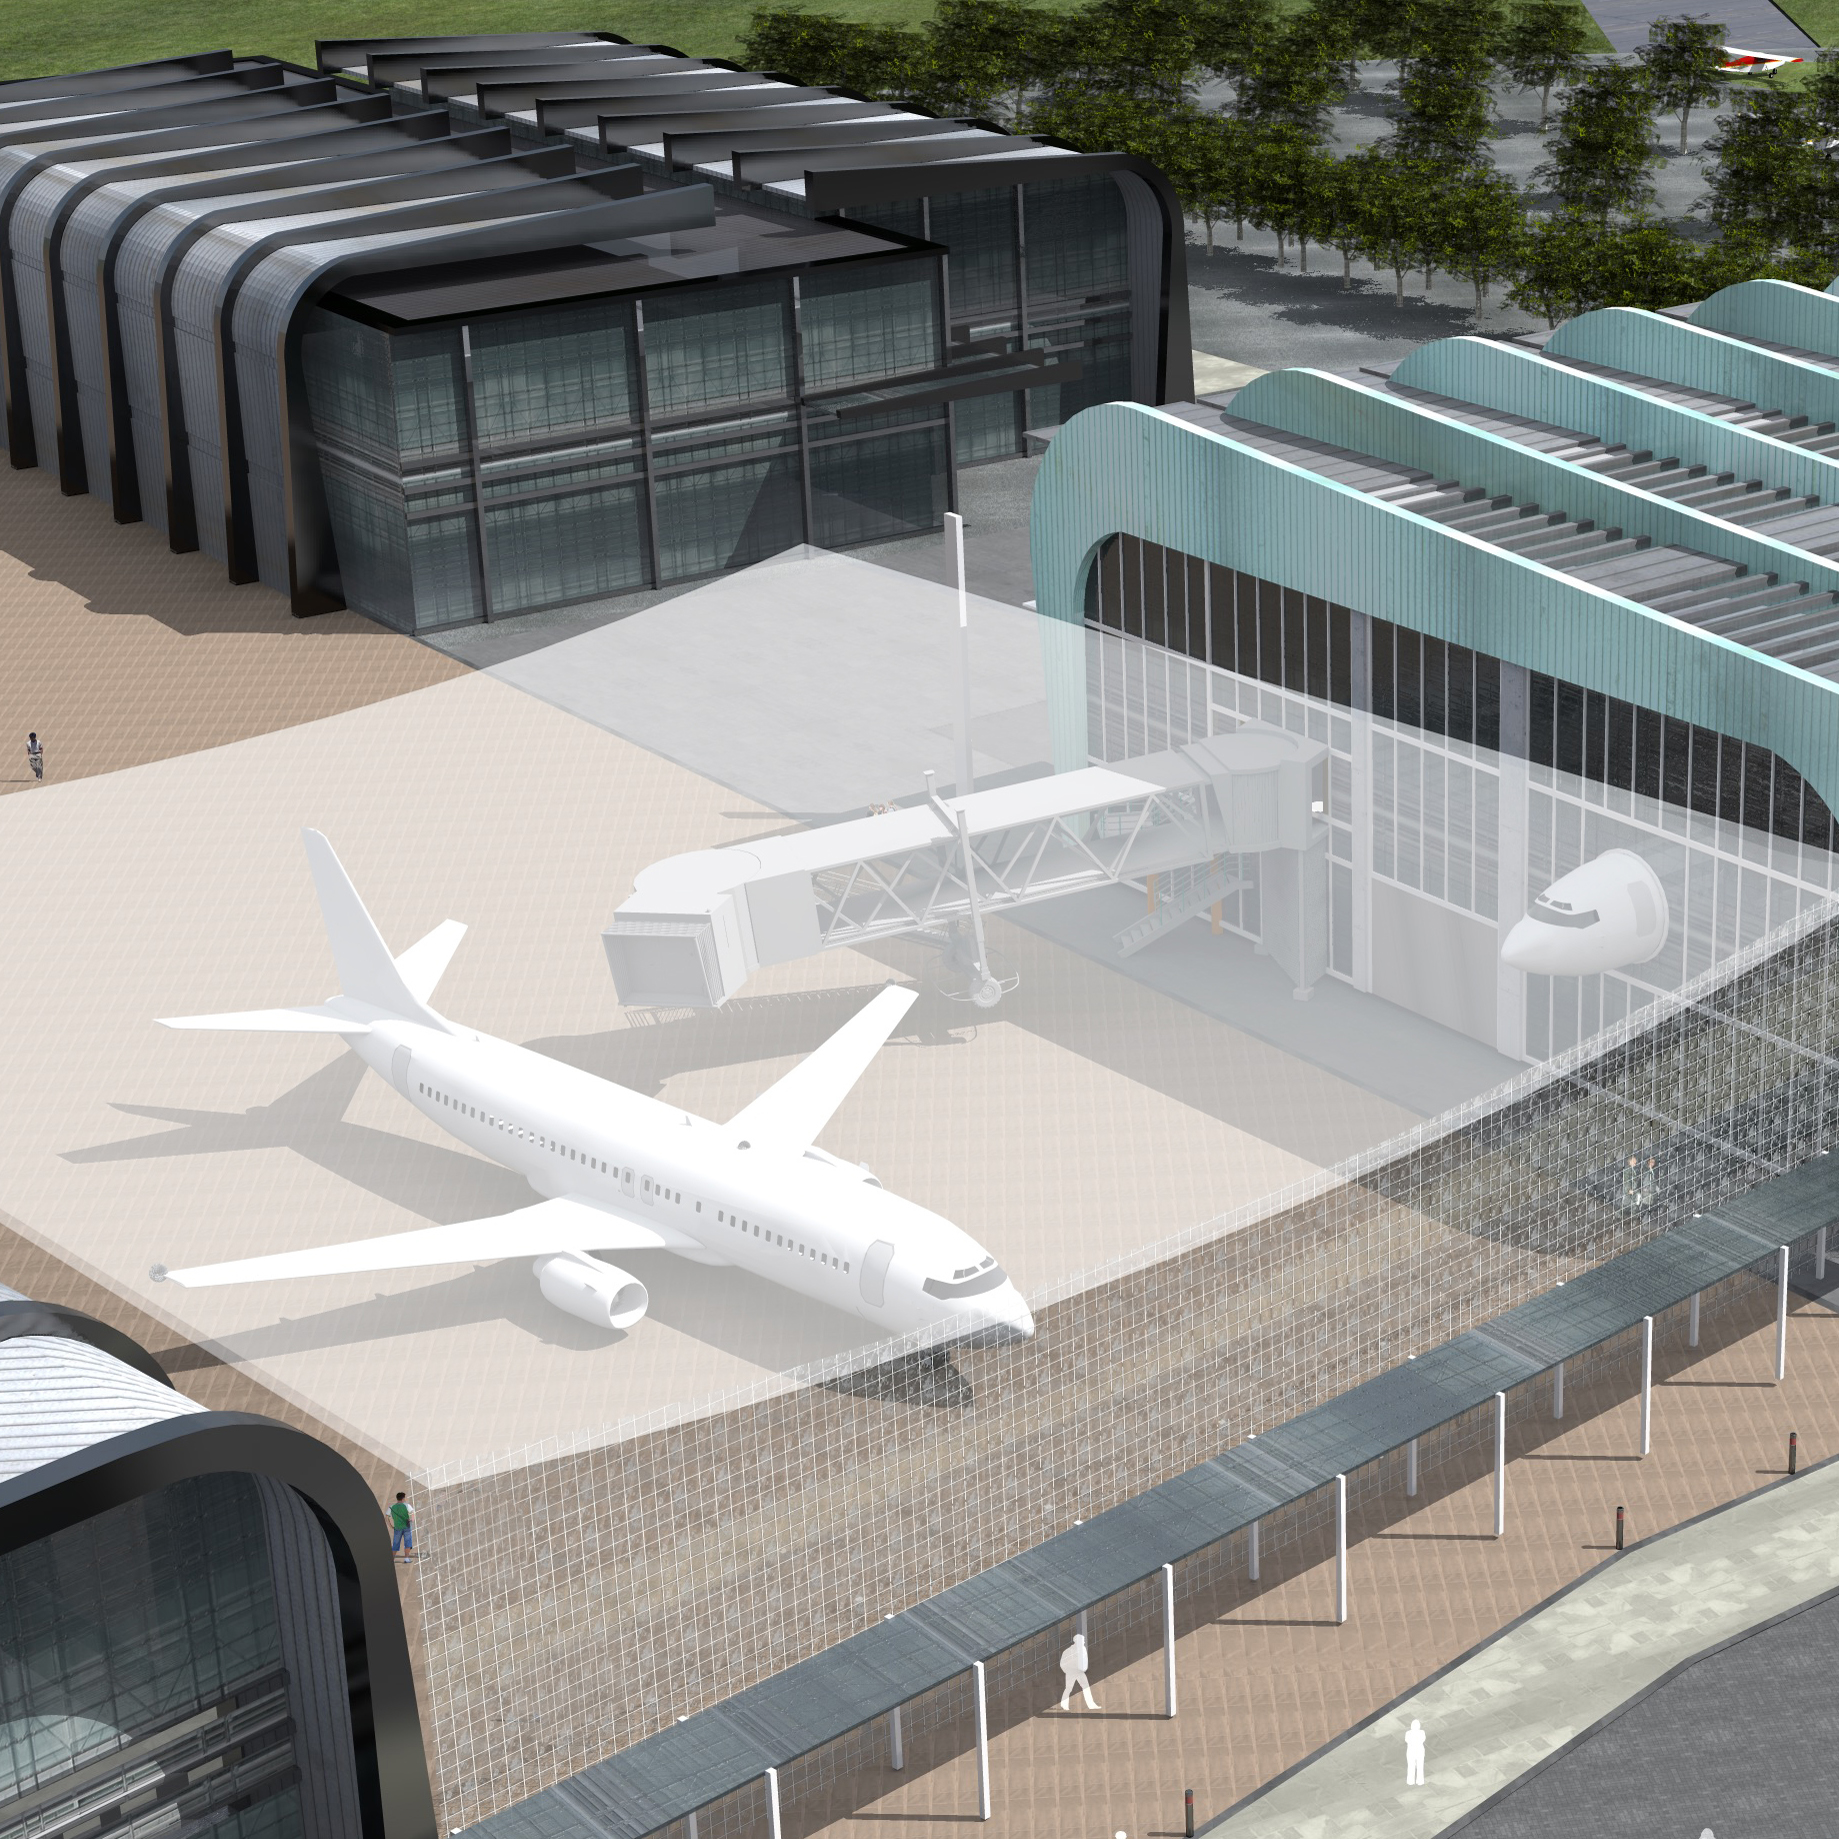 Design image of new Digital Aviation Research and Technology Centre